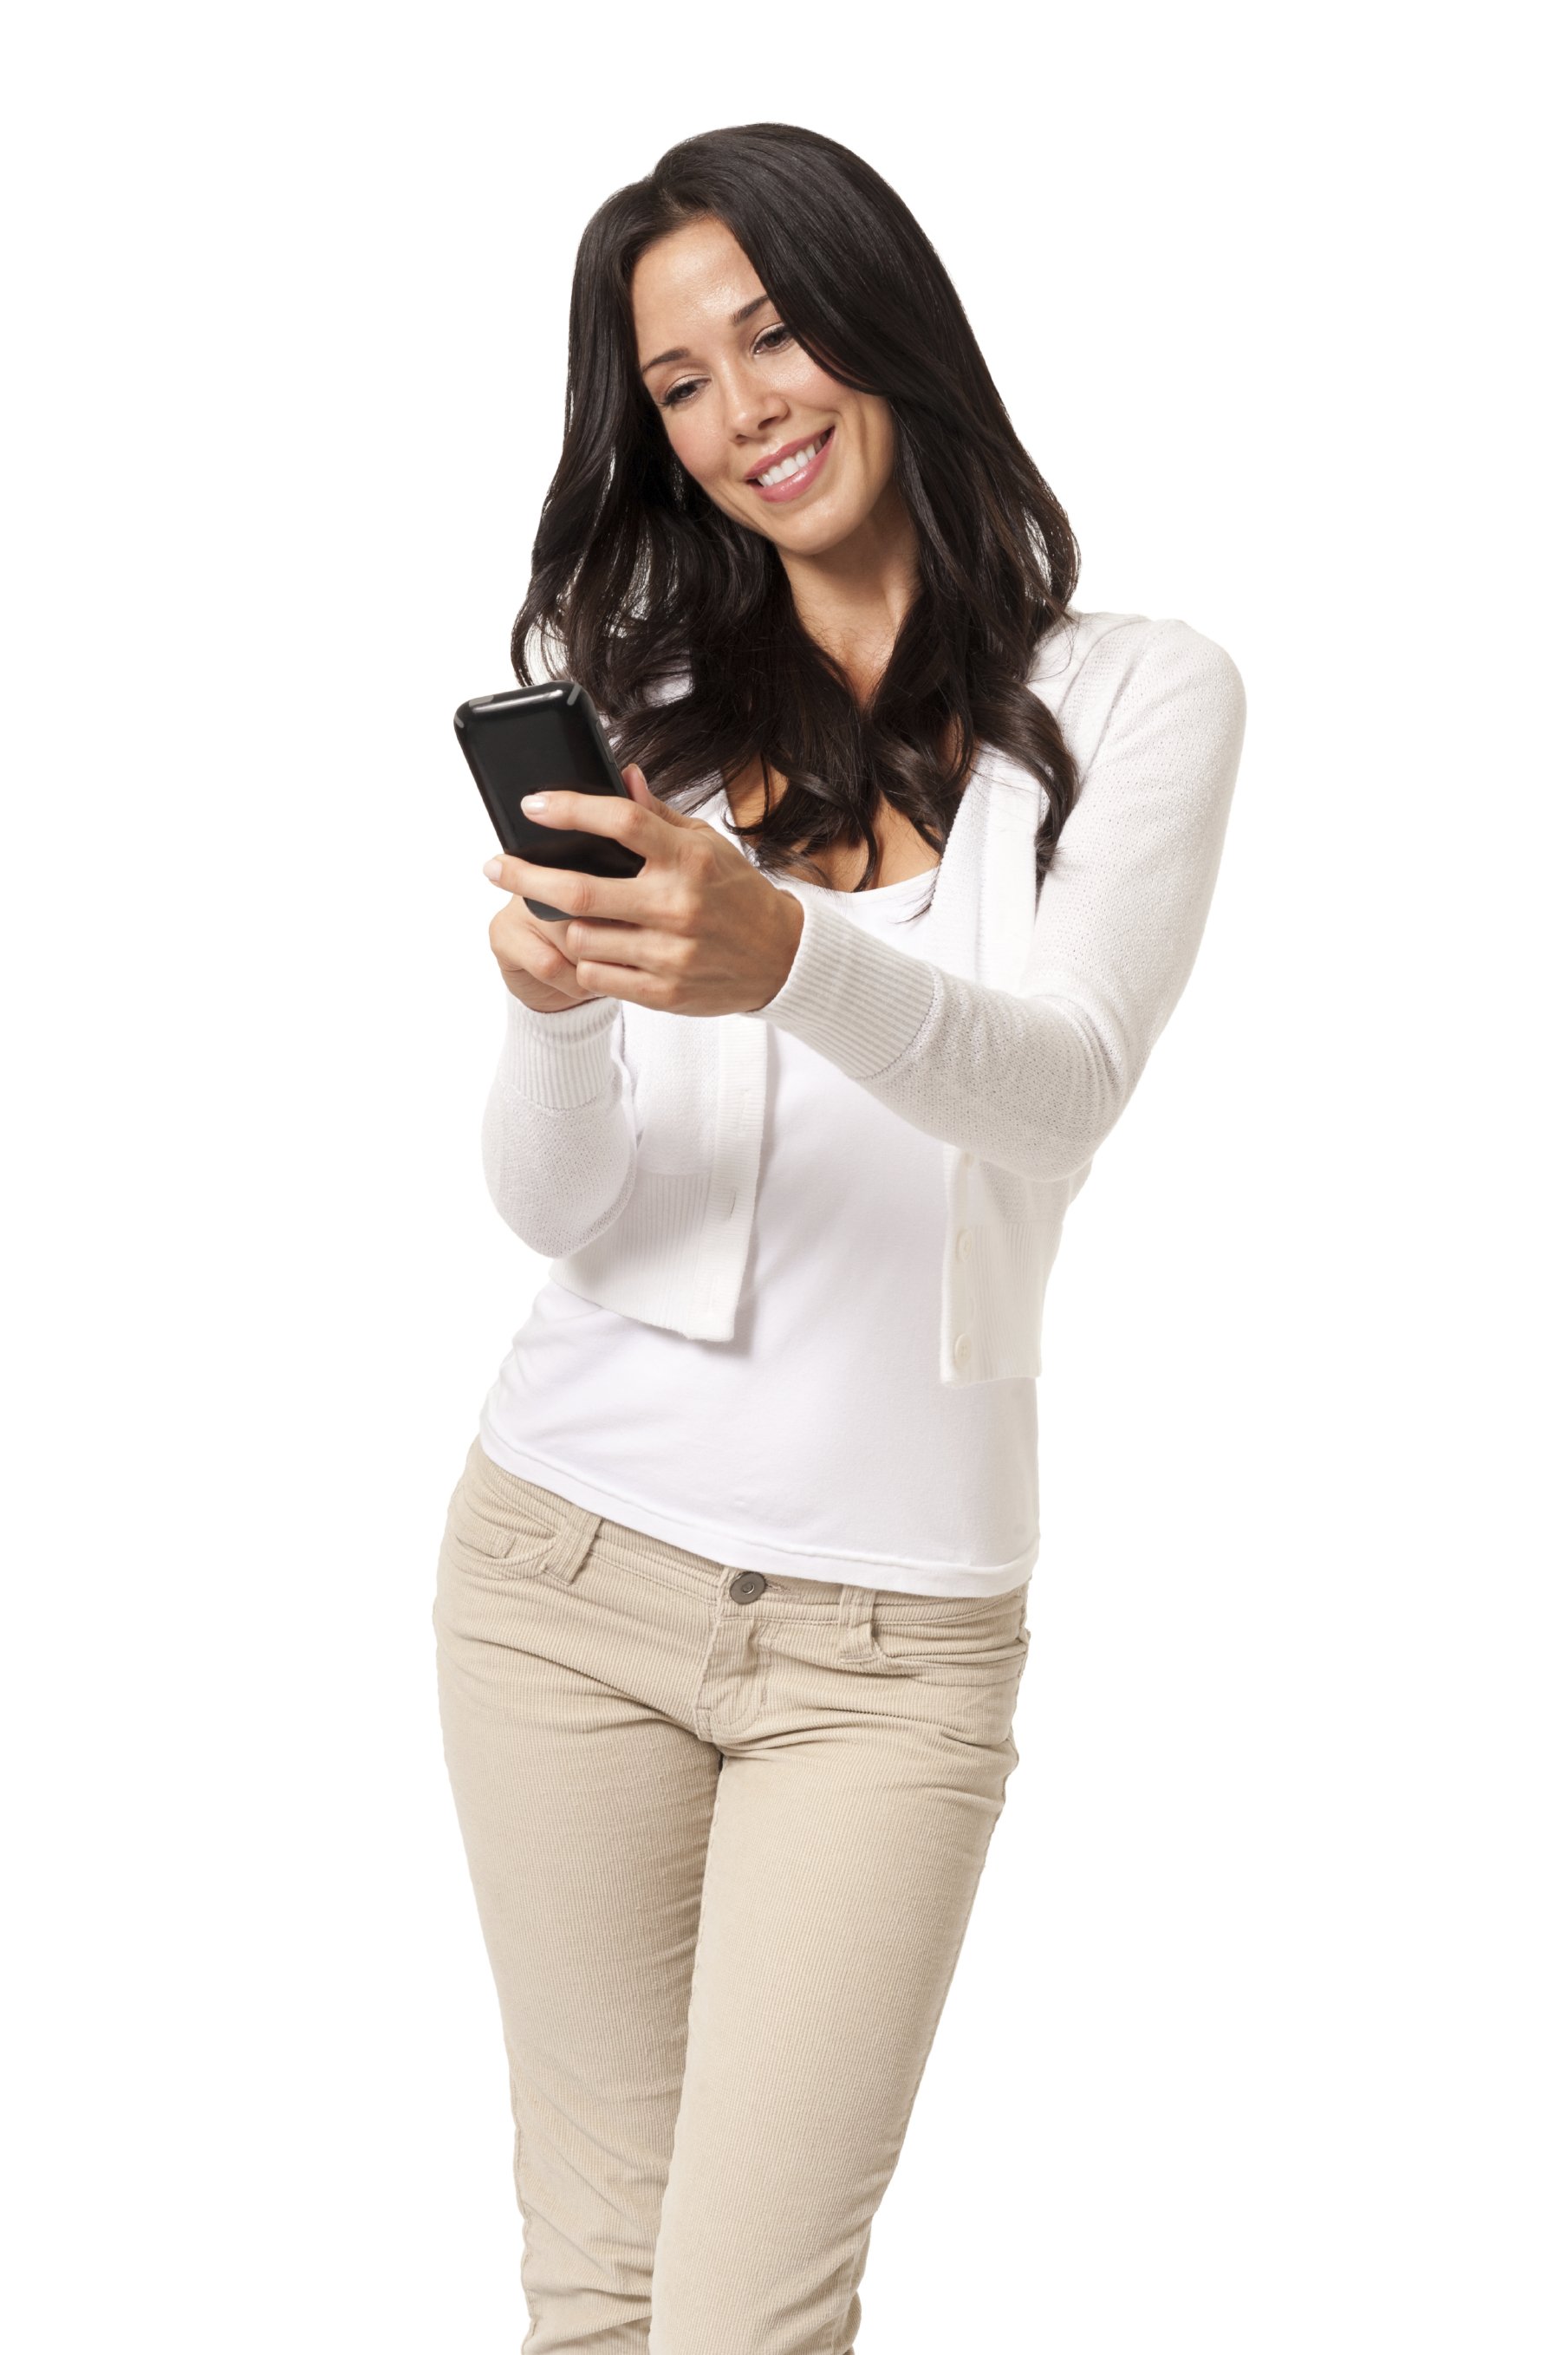 /wp-content/uploads/2012/12/woman_with_smartphone_169723.jpg